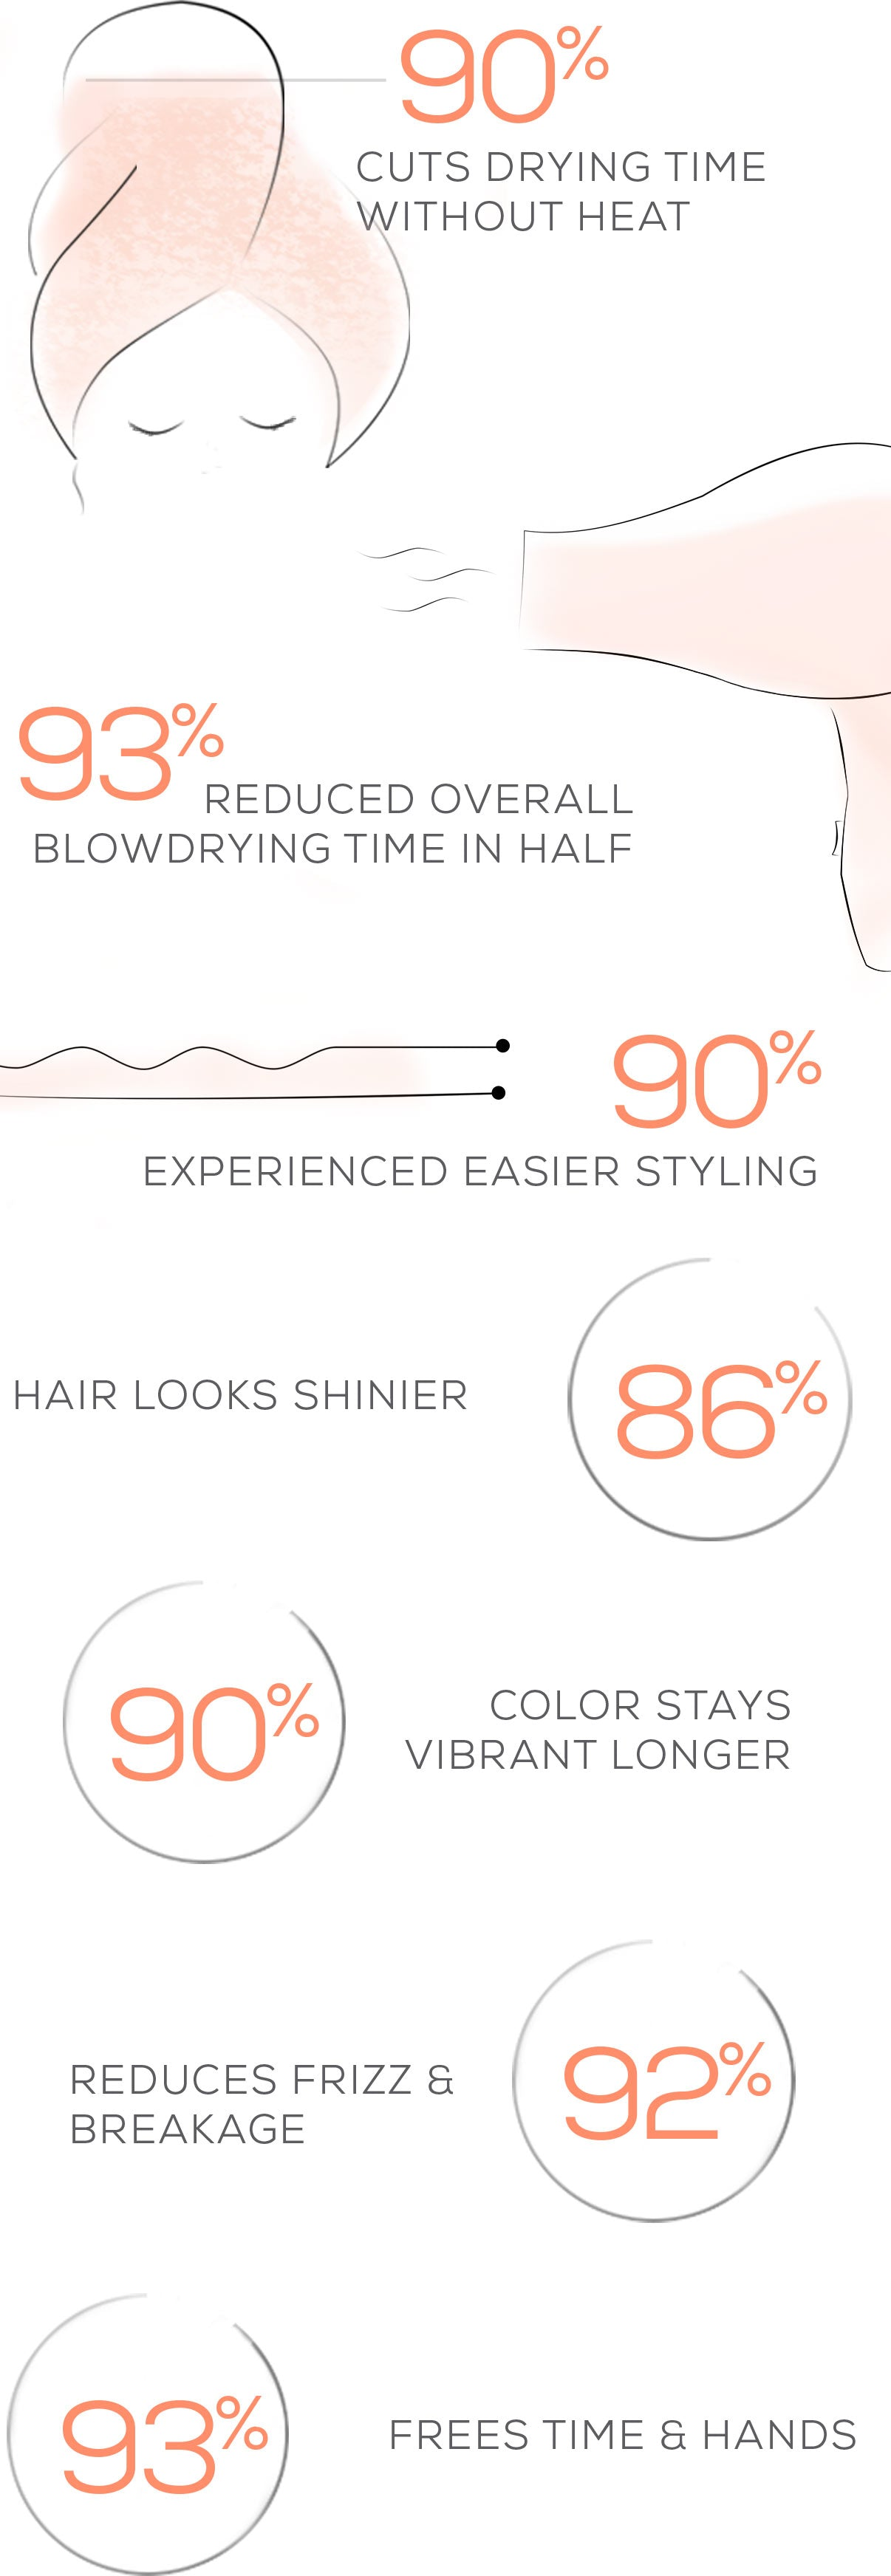 AQUIS Hair Science Infographic